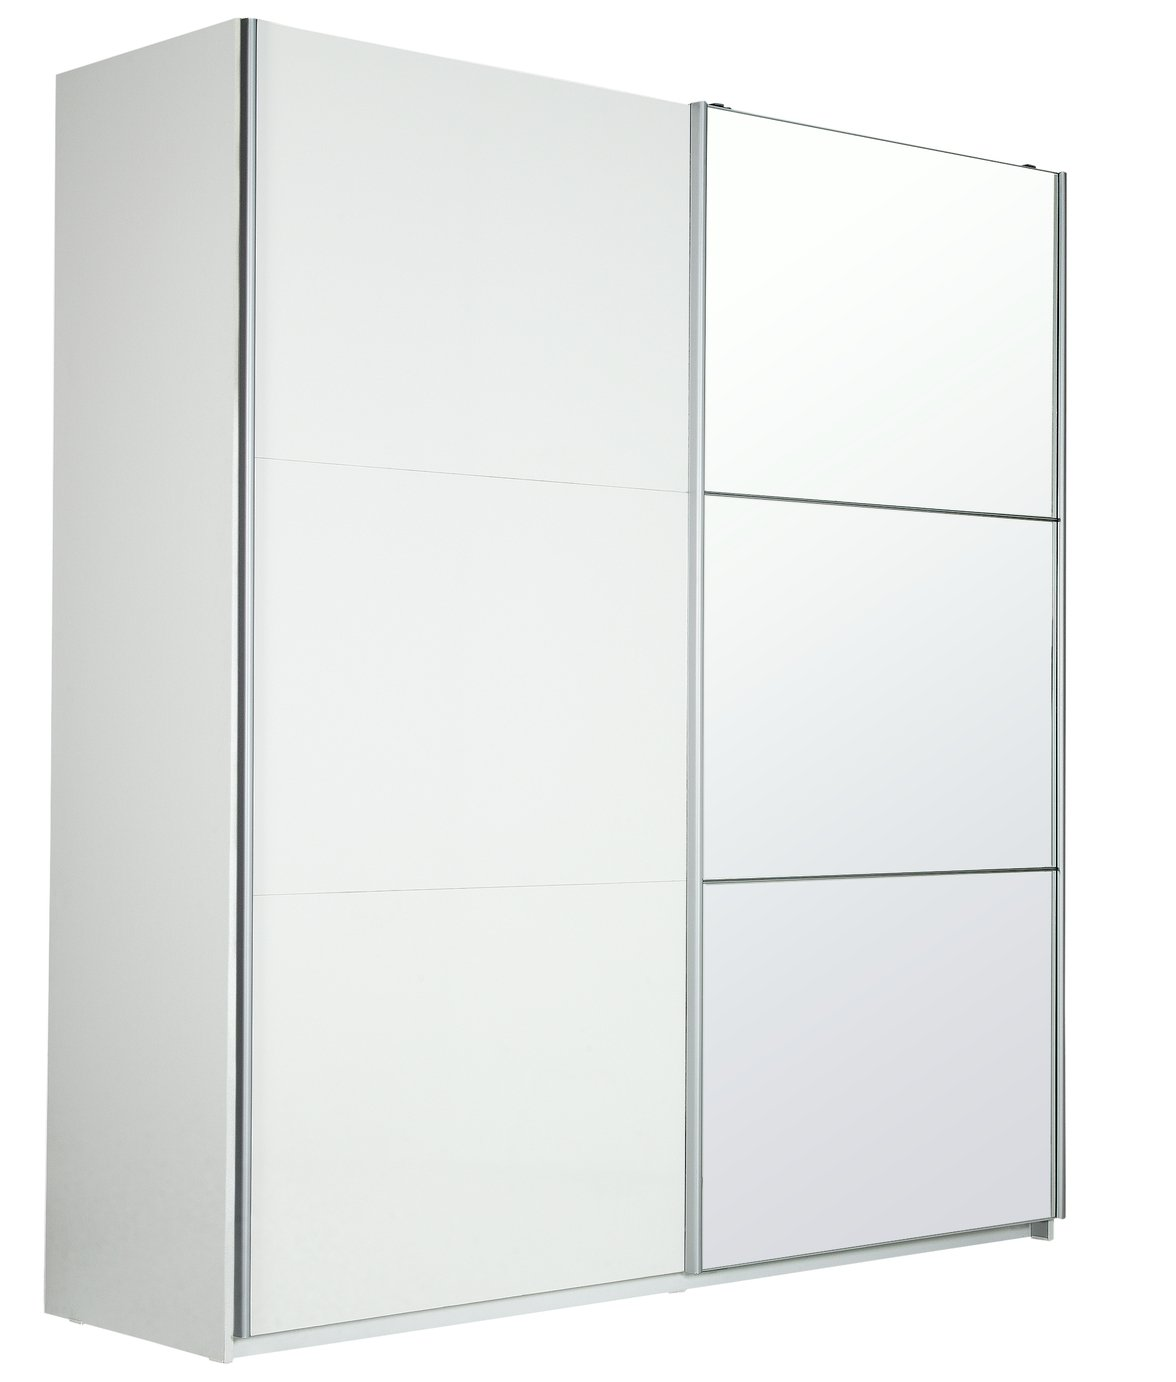 Sale On Hygena Bergen Large 2 Door Sliding Wardrobe